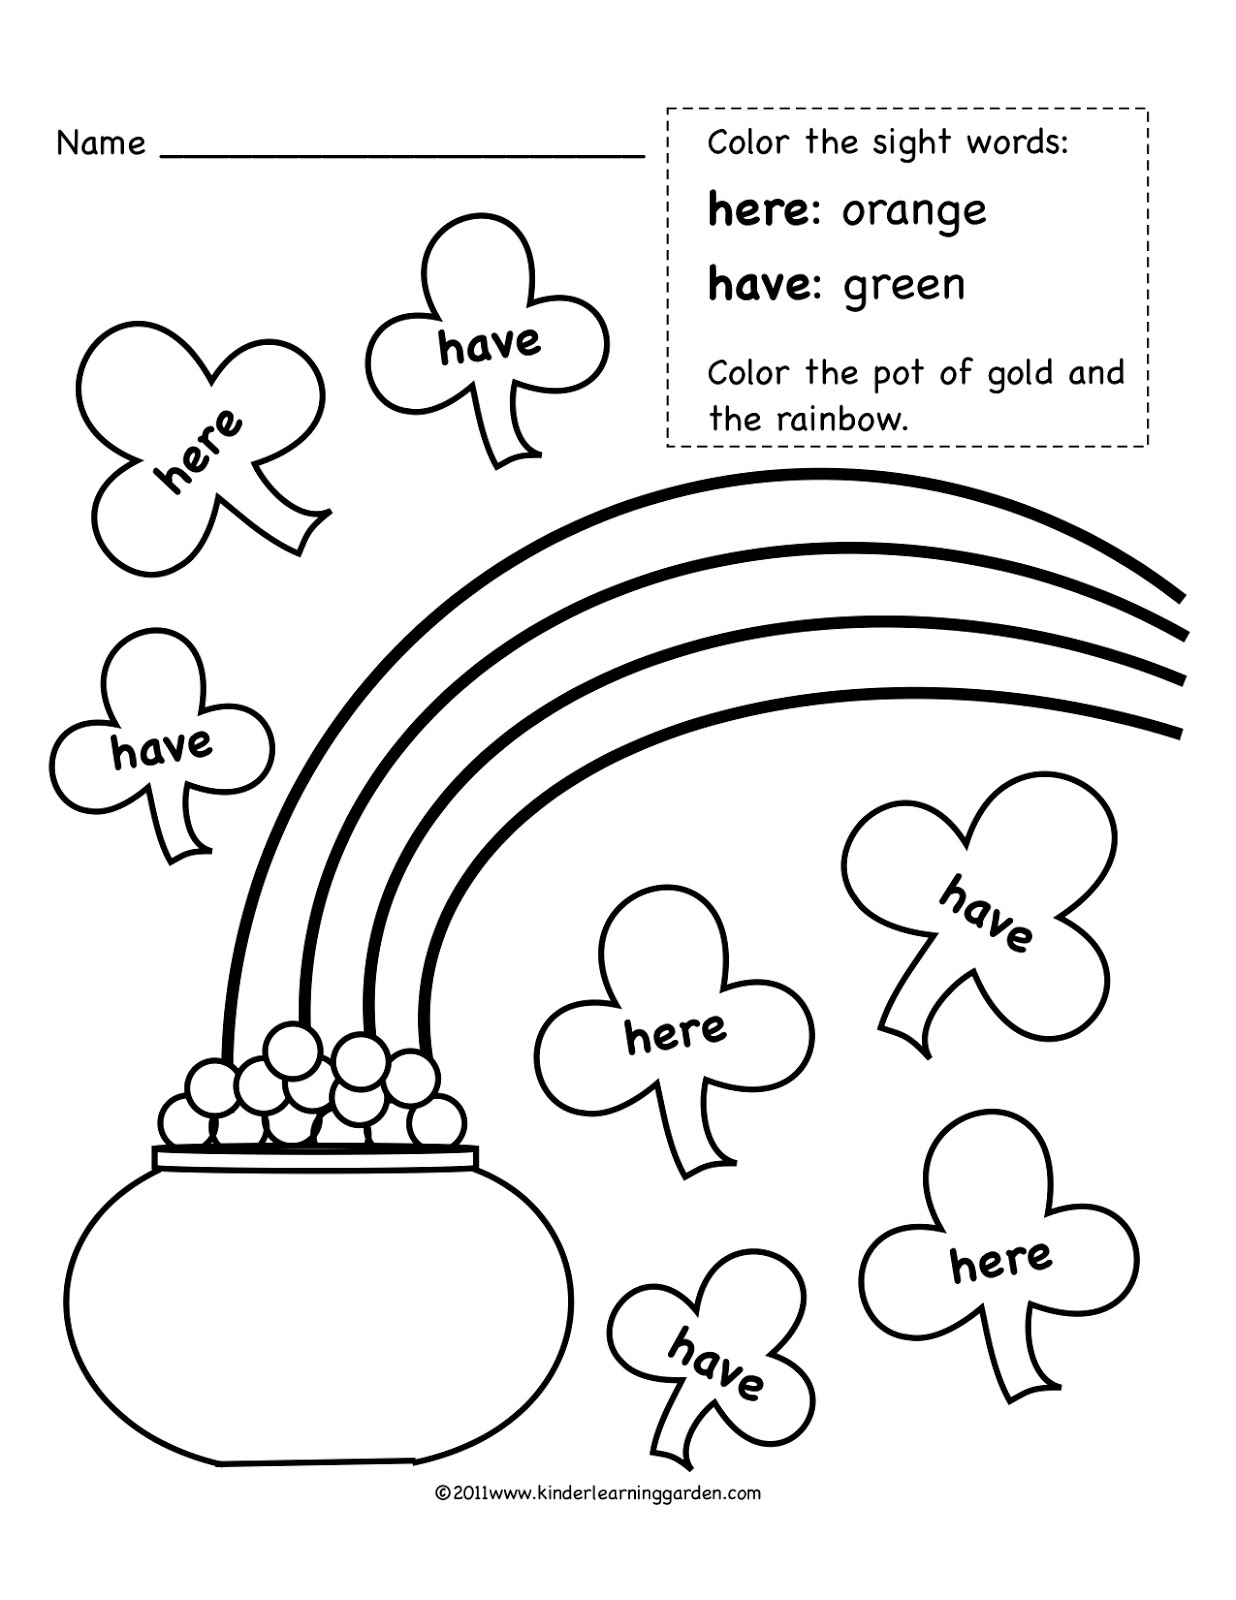 March Coloring Pages For Kindergarten